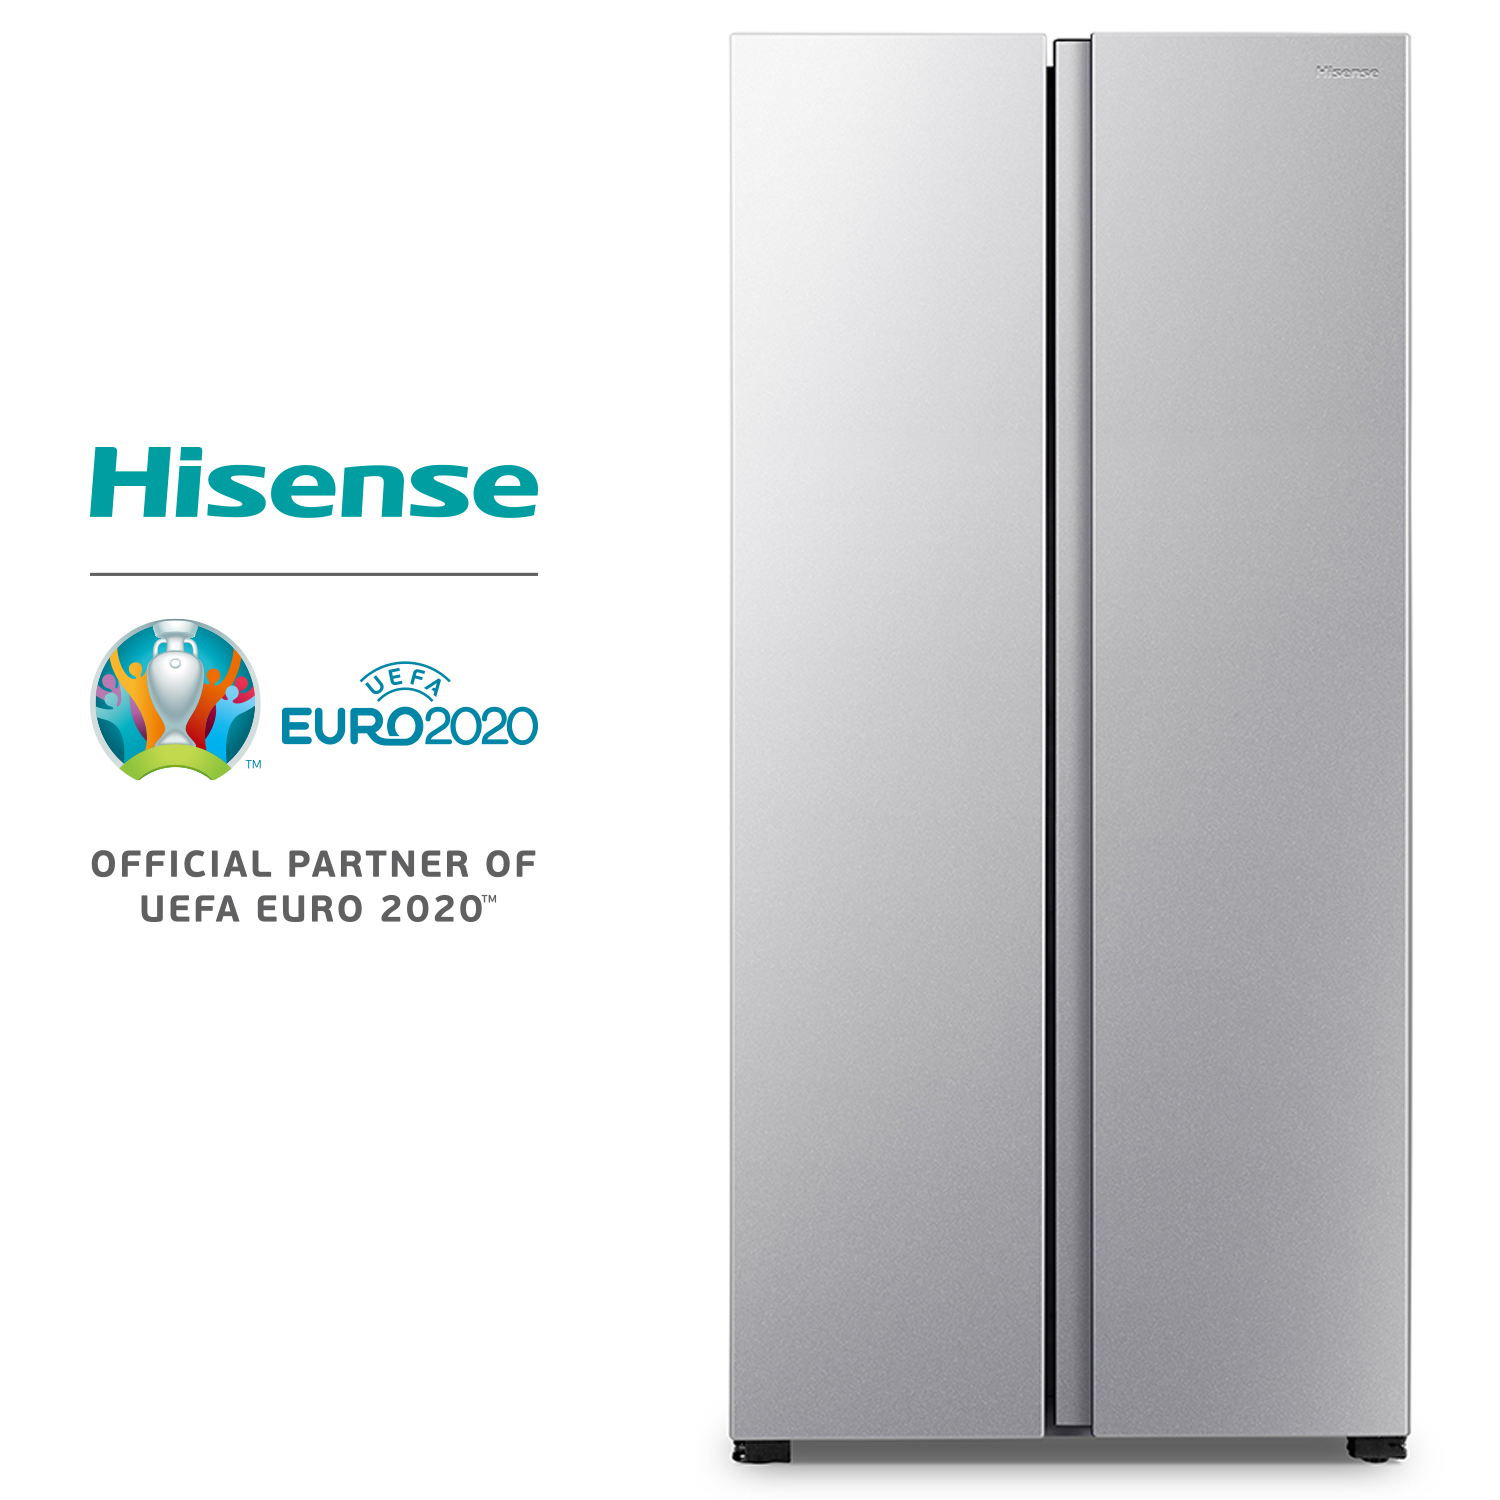 Hisense RS560N4AD1 Refrigerator, Refrigerator, 428 Litres, LED Light, No Frost, Double Door, Class A +, Side By Side